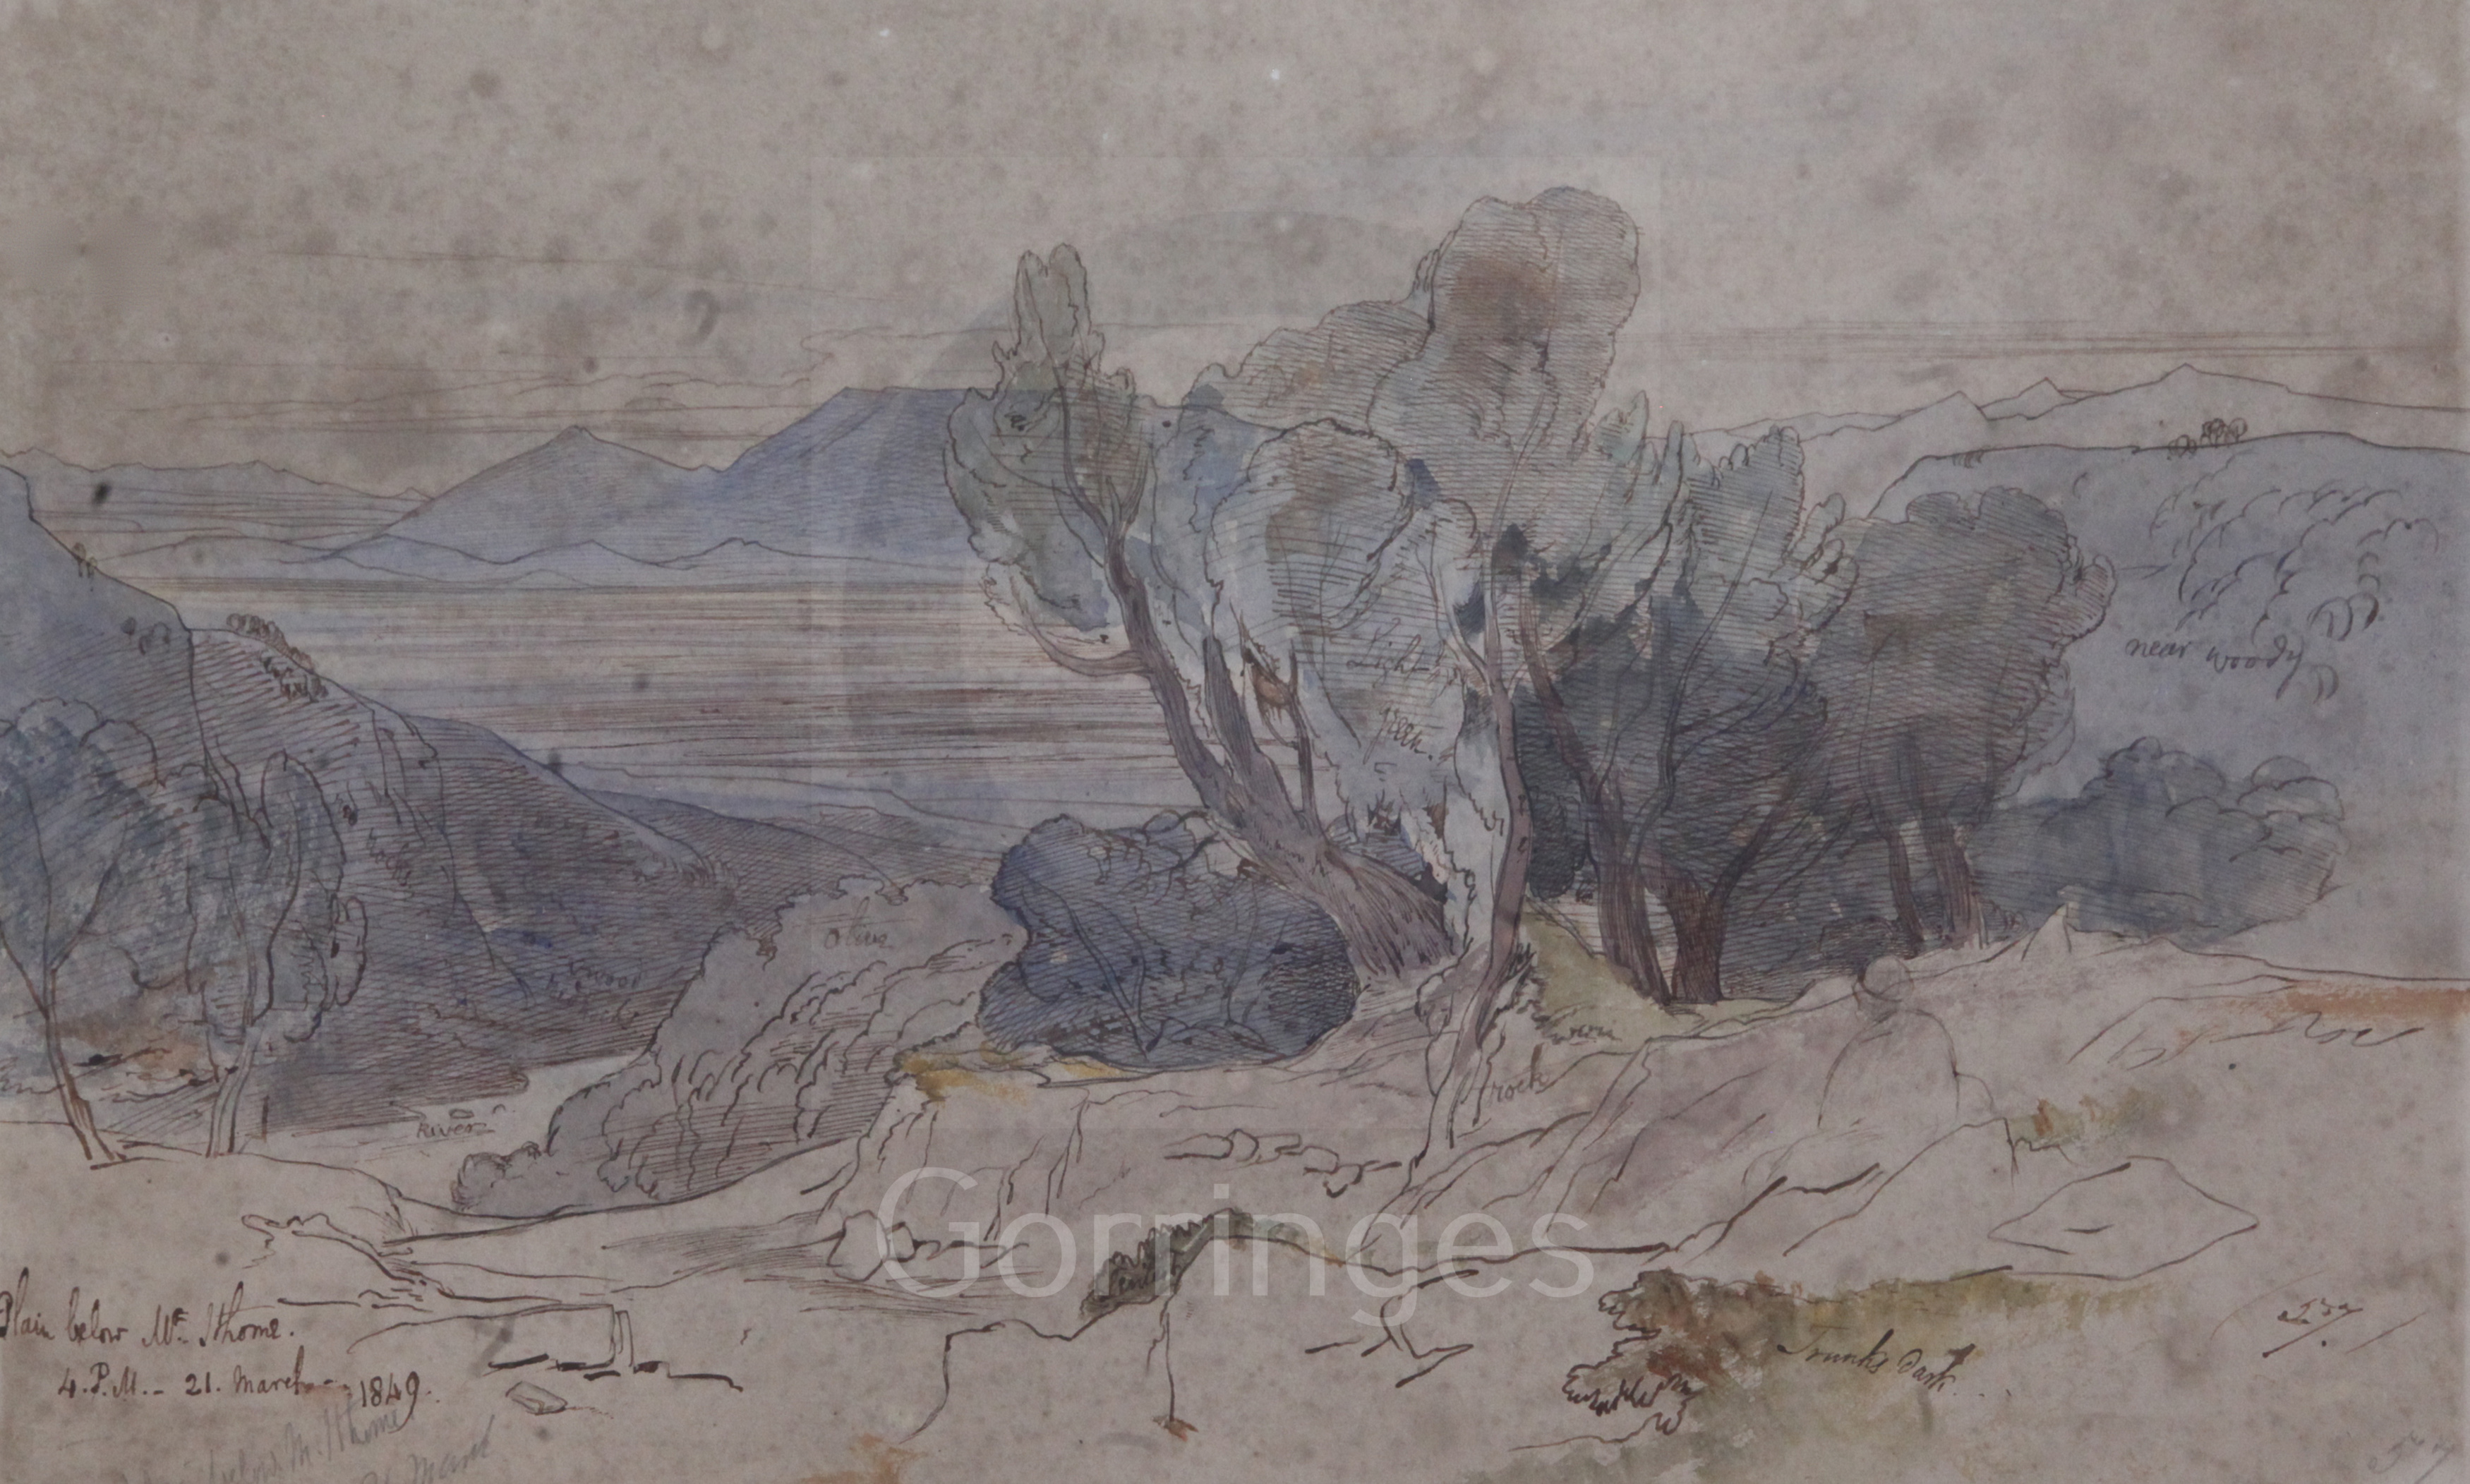 Lot 475 - Edward Lear (1812-1888)ink and watercolour'Plain below Mt Ithome, 4p.m. 21 March 1849'inscribed